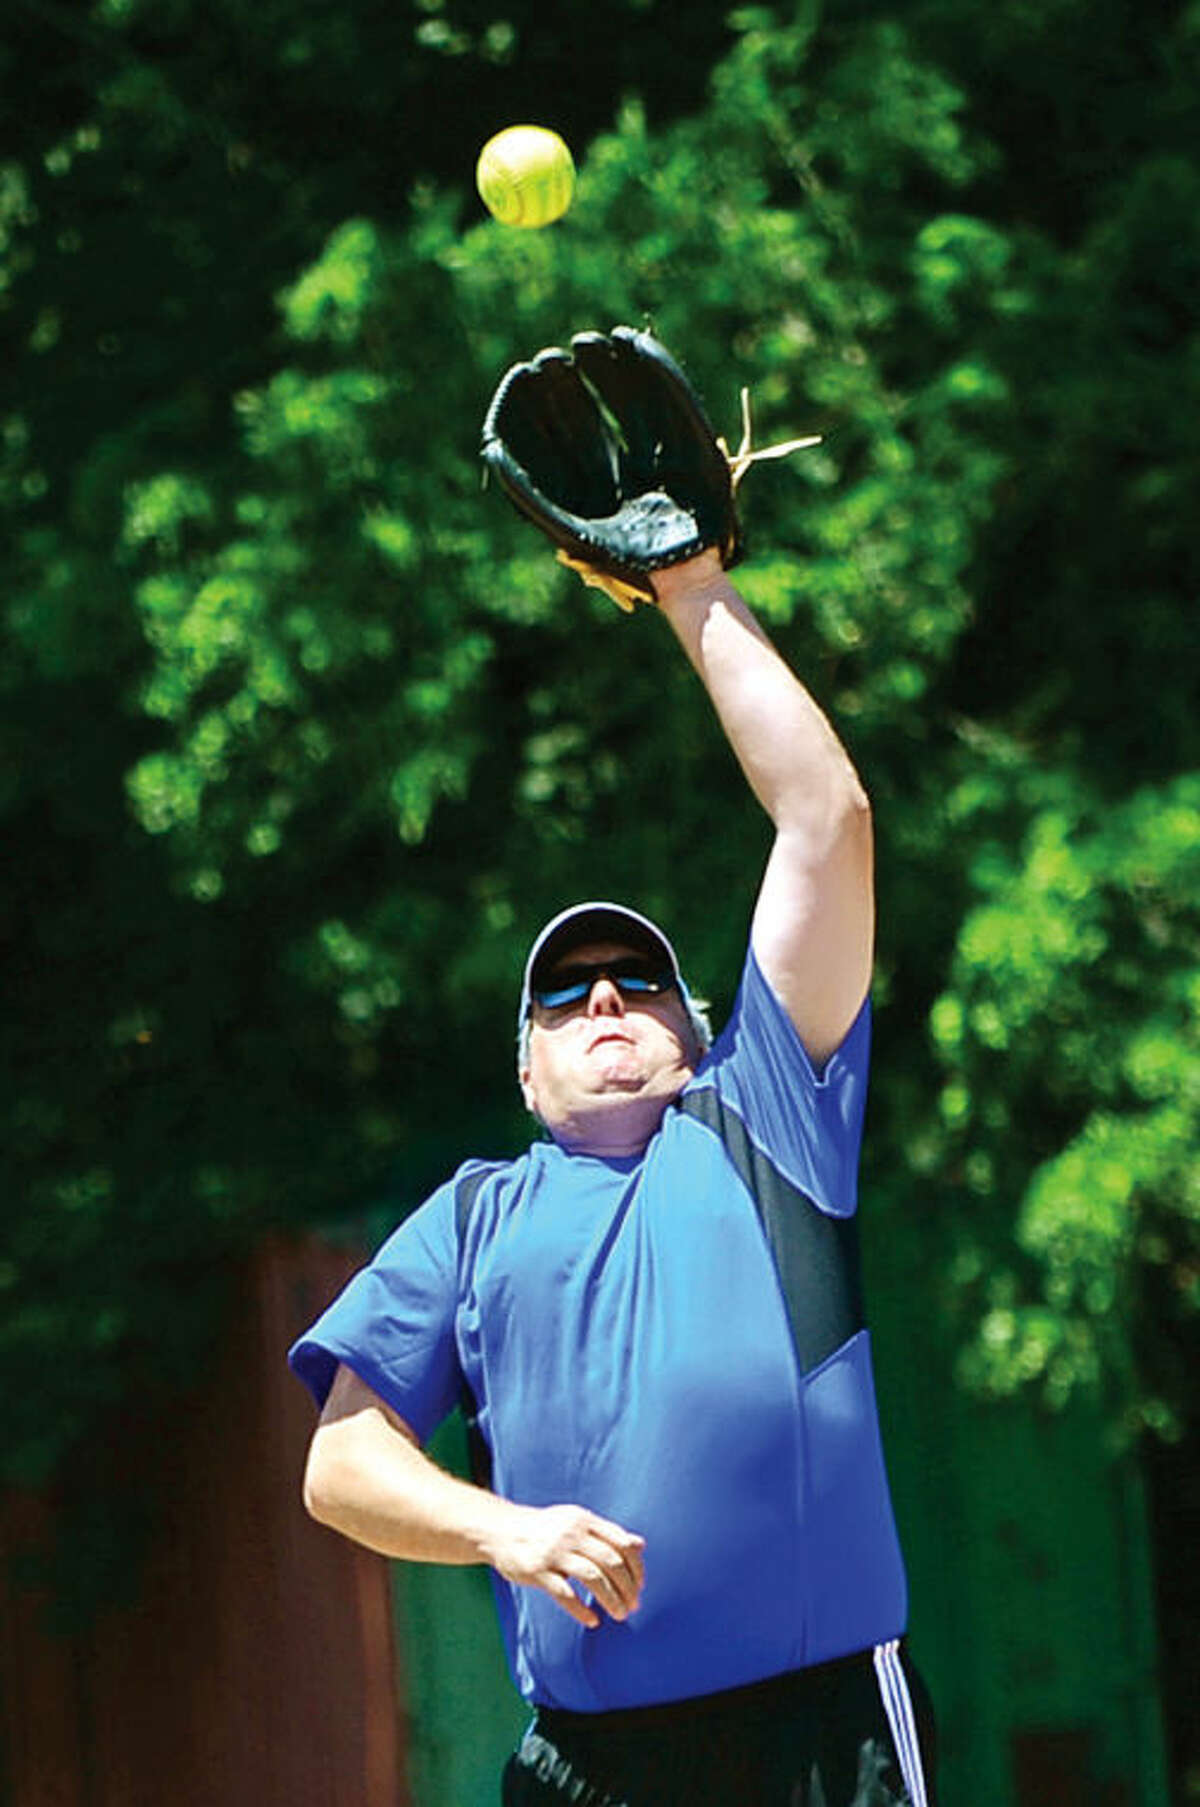 Hour photo / Erik Trautmann Democrat Crian Lilly snags a fly ball during the annual Wilton Political softball game where town Republicans play Democrats for the Frivolity Cup as part of Wilton's Independence Day Celebration.